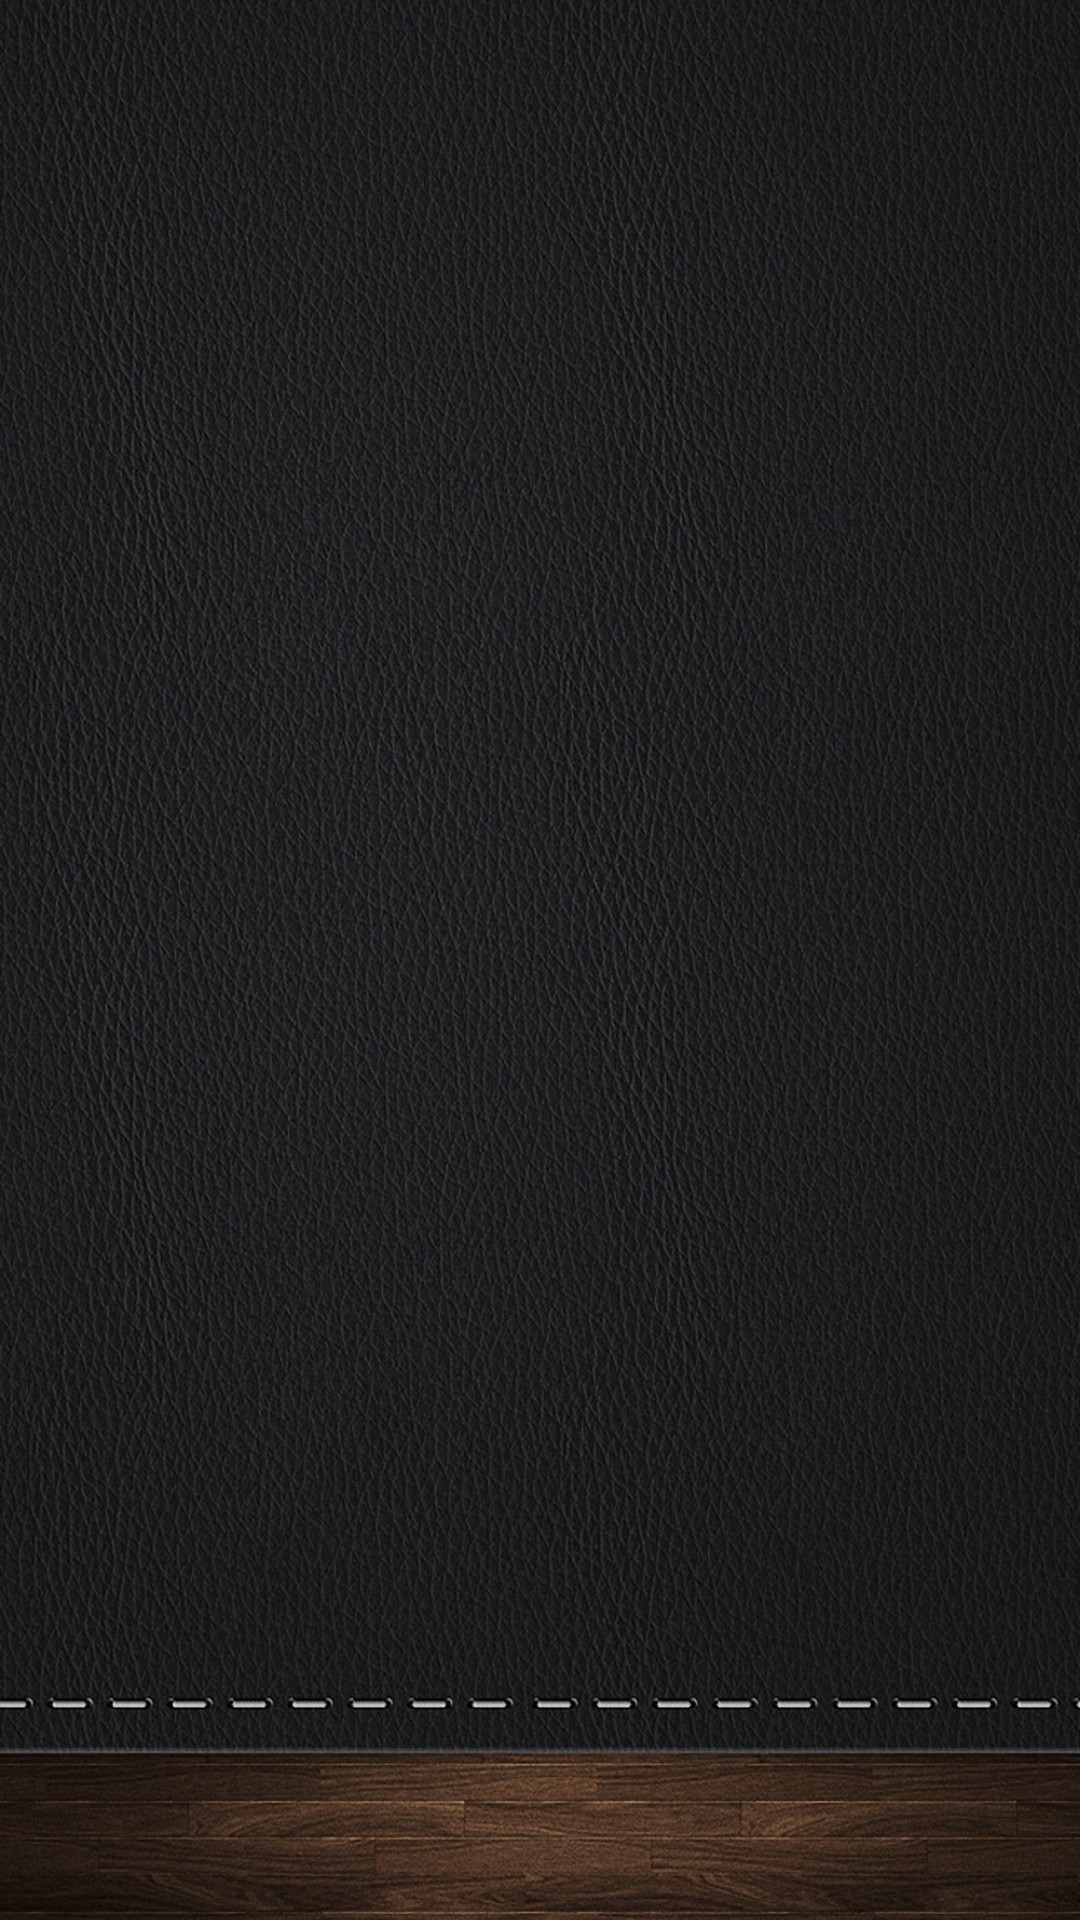 Leather Texture Iphone Wallpaper